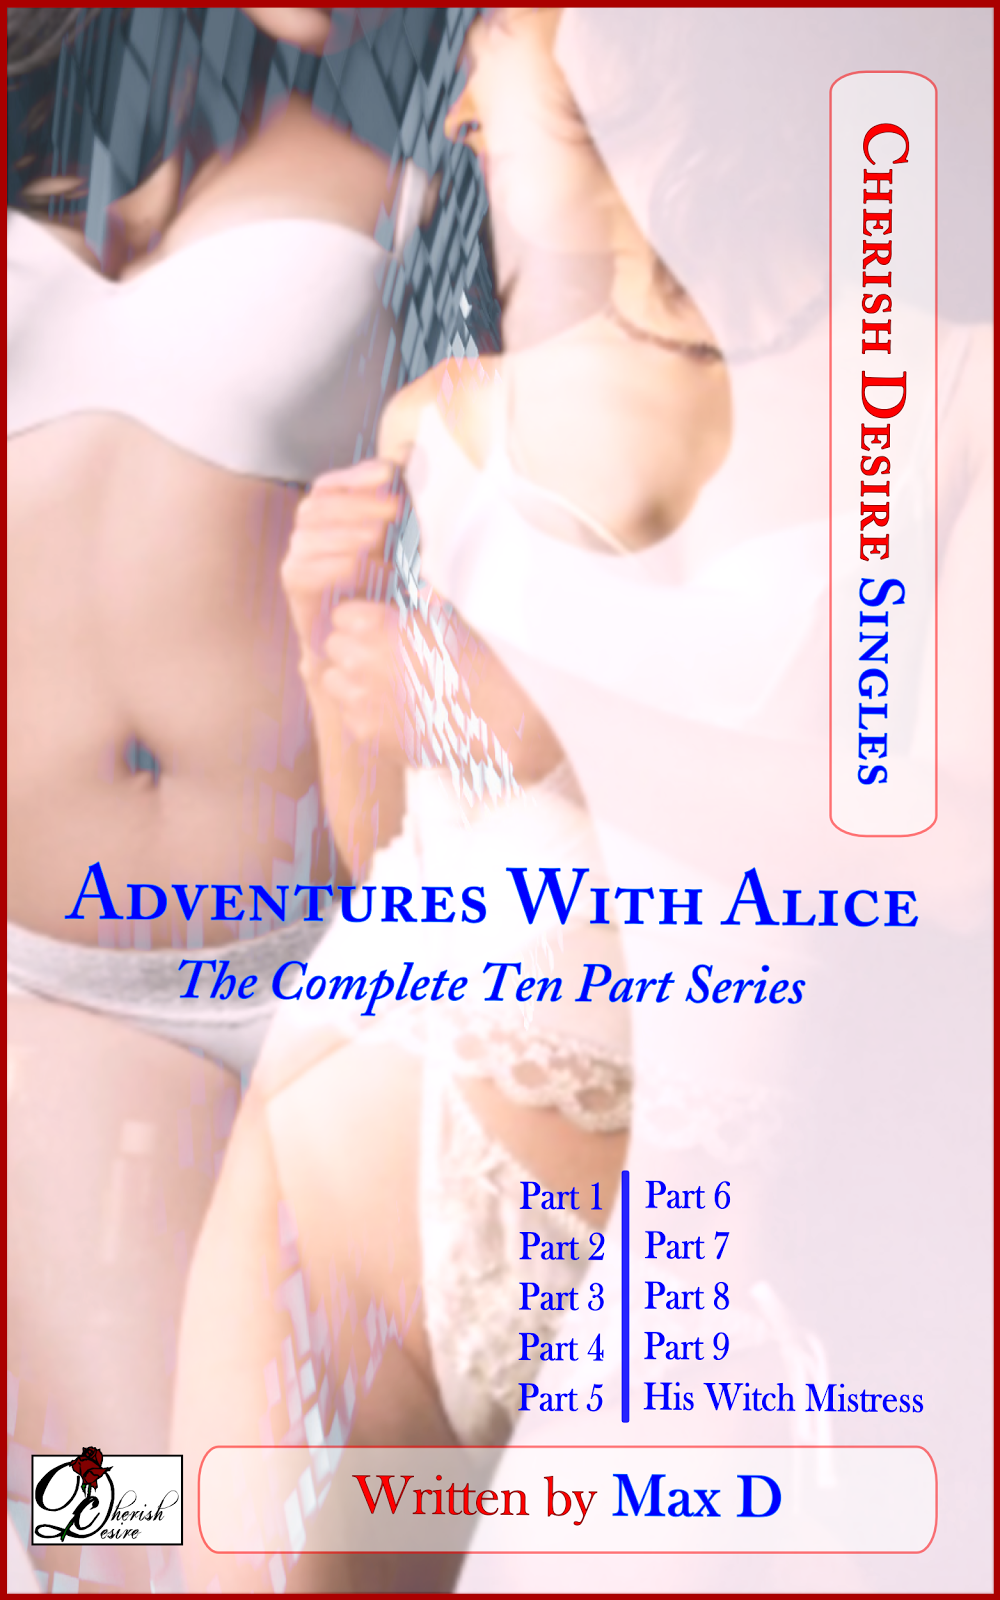 Cherish Desire Singles: Adventures with Alice (The Complete Ten Part Series), His Witch Mistress (An Alice Story), Max D, erotica